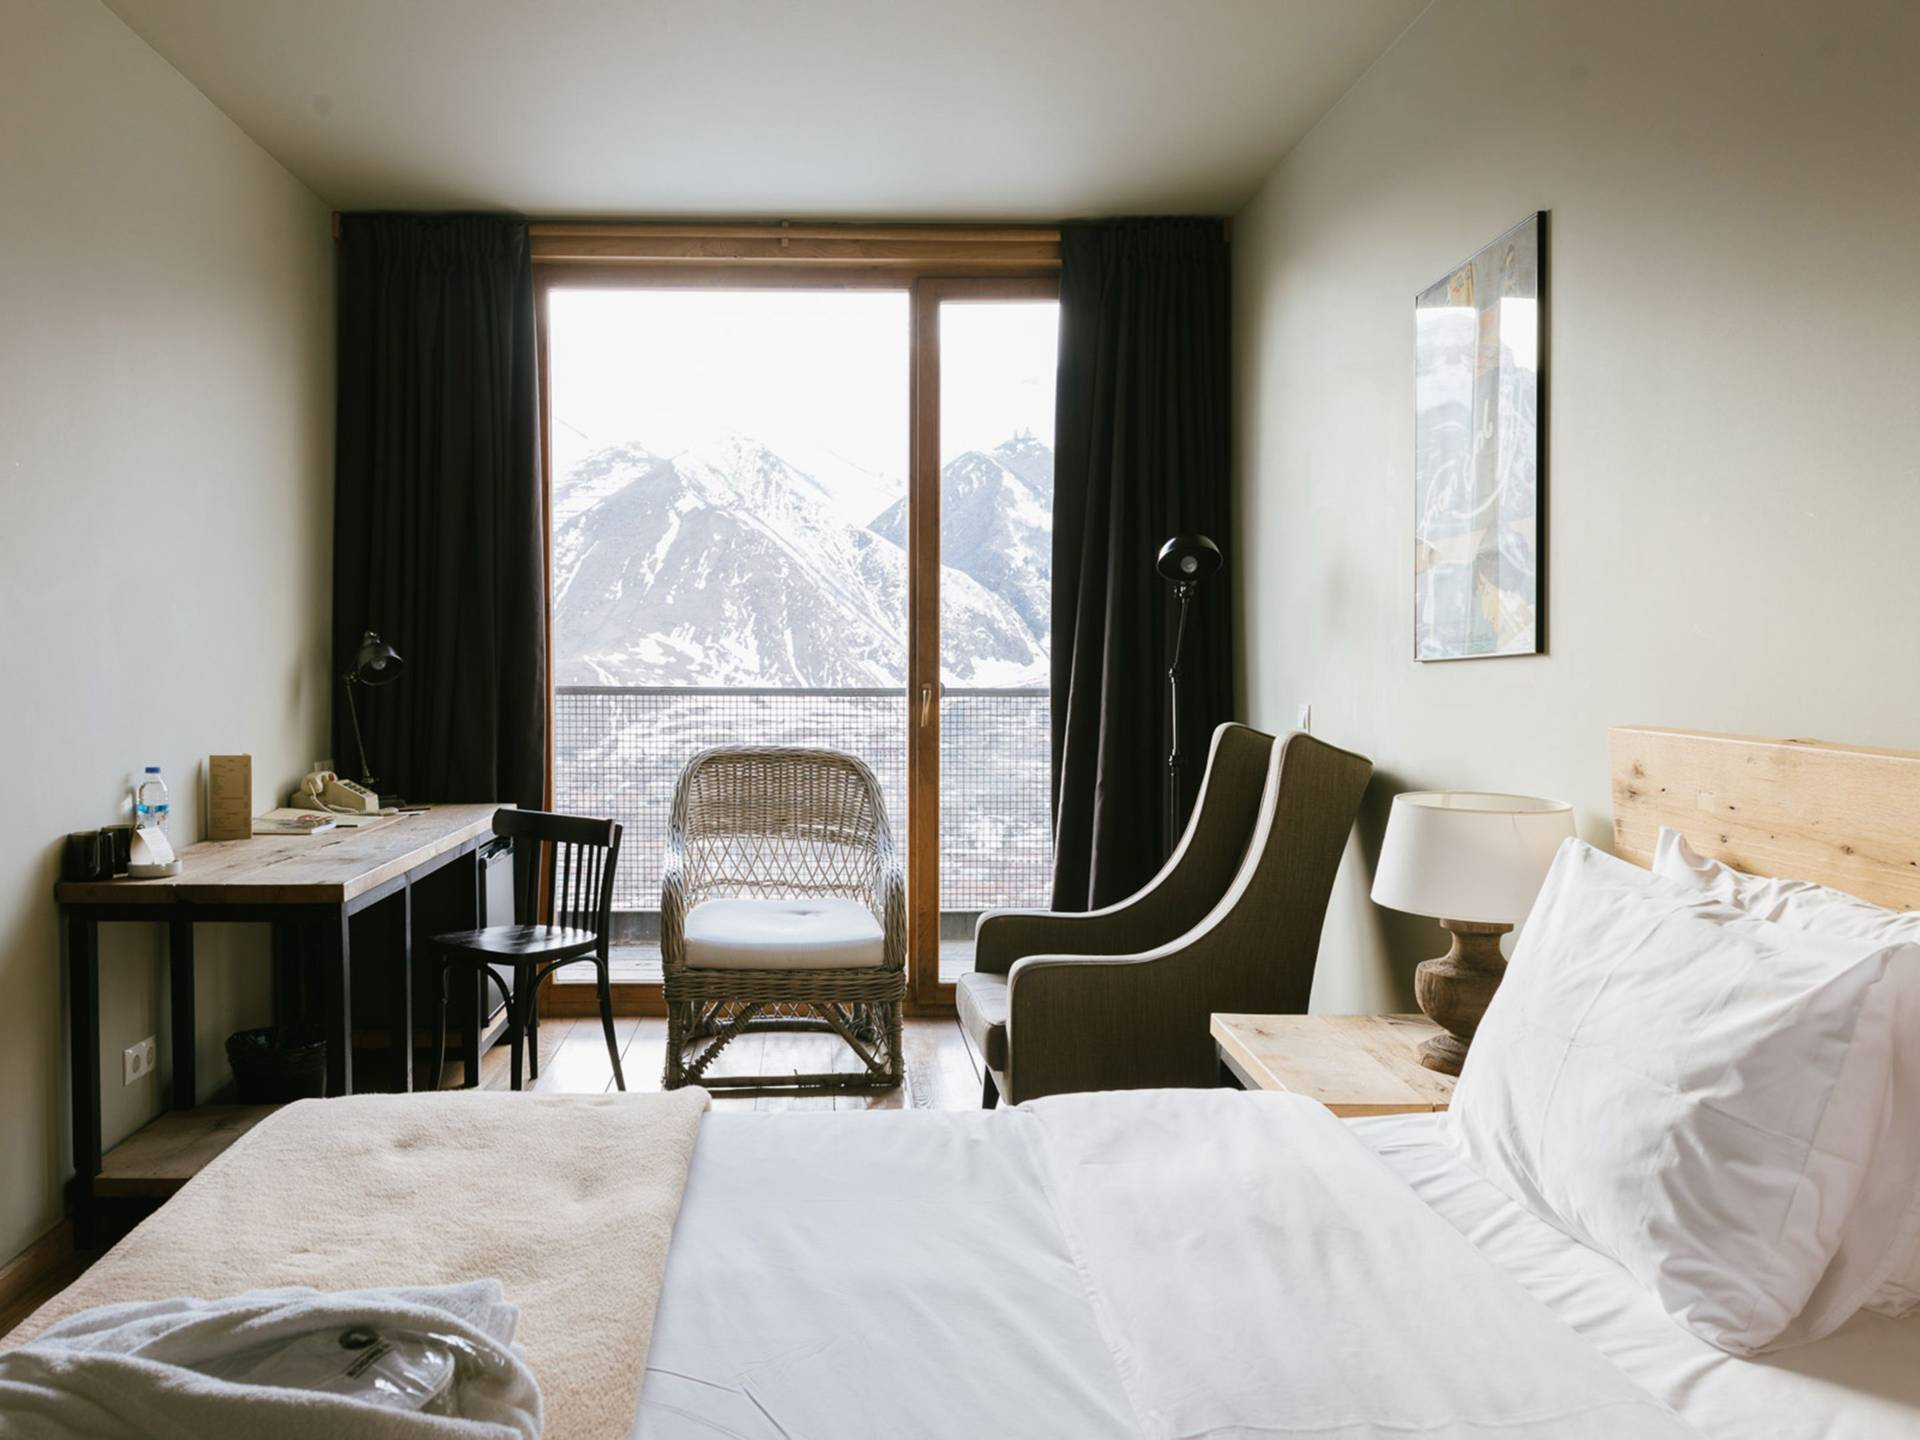 Emporium-Voyage-Rooms-Hotel-Kazbegi-Stepantsminda-Double Room - Mount Kazbegi View (1).jpg